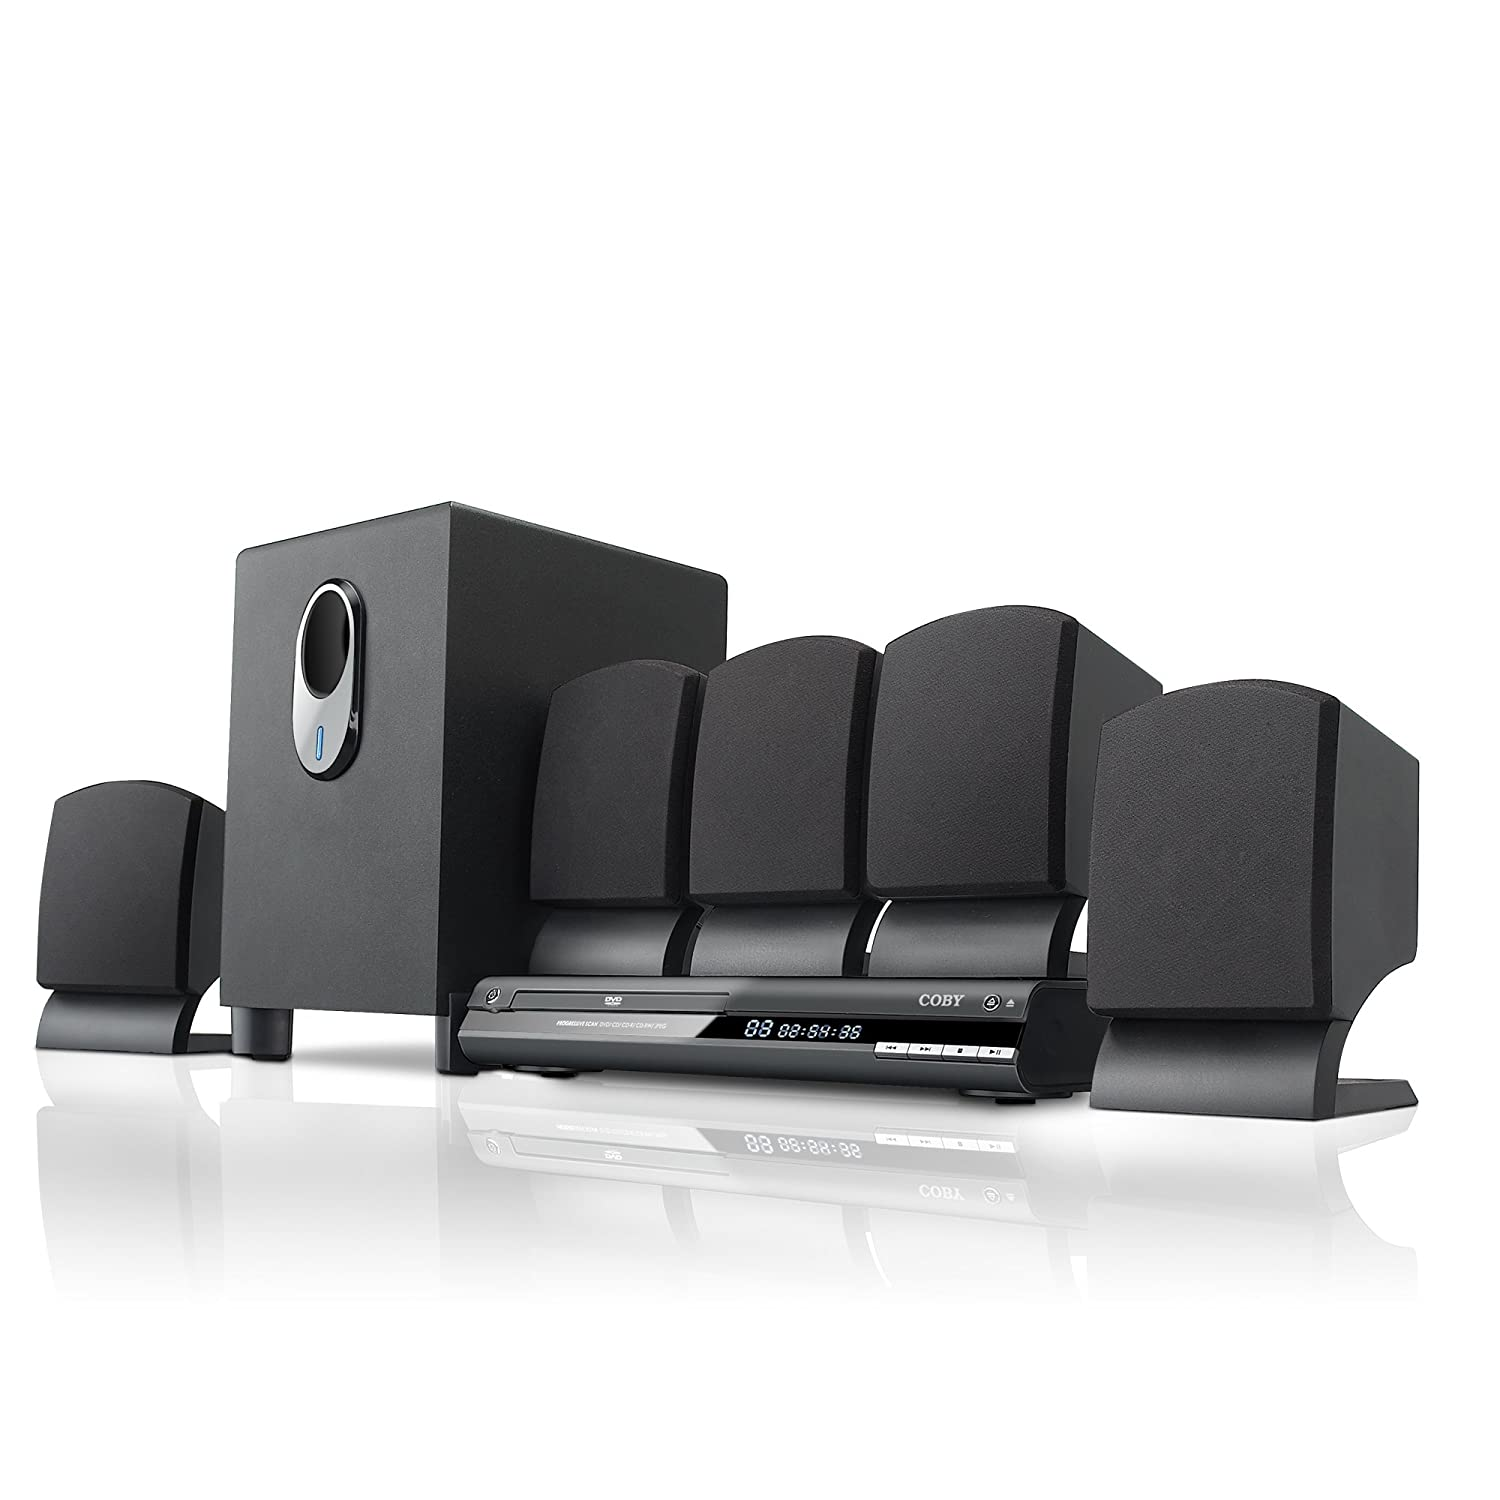 Amazon.com: Coby DVD765 5.1-Channel DVD Home Theater System (Black ...